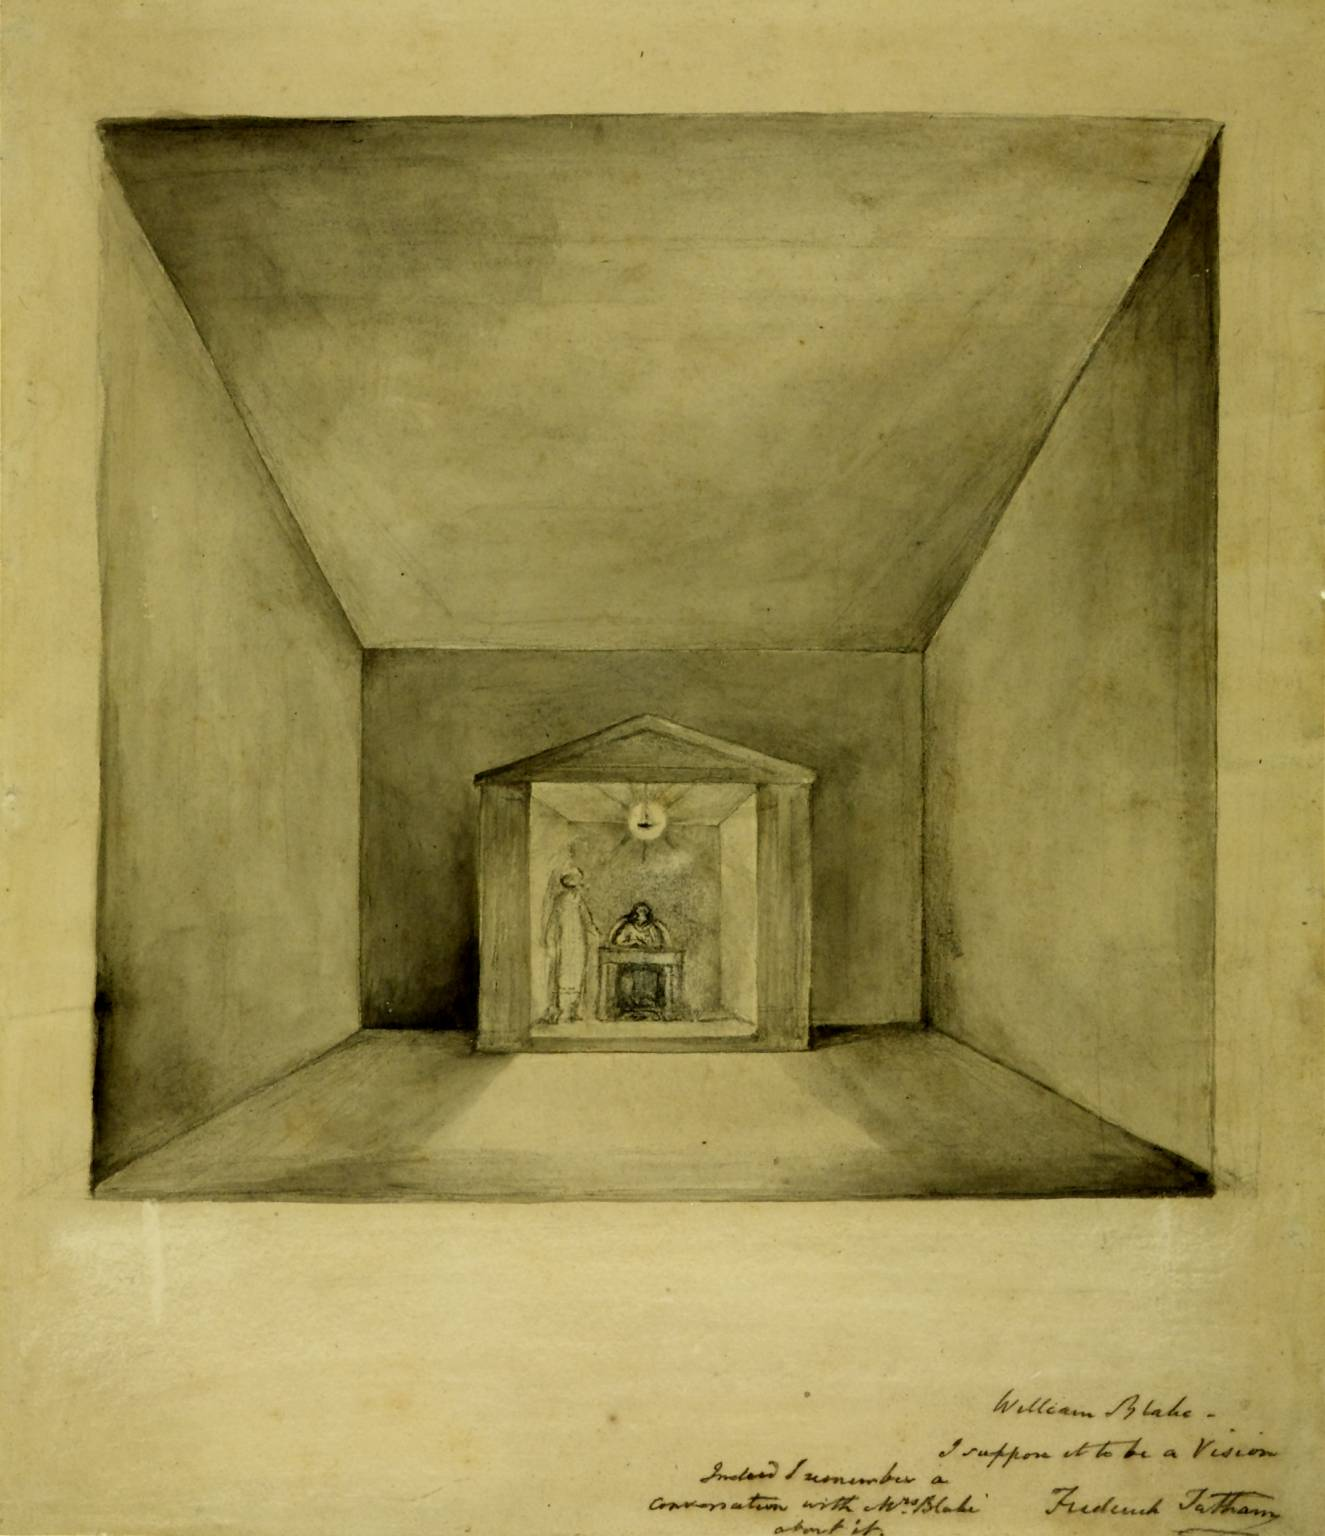 William Blake 'A Vision: The Inspiration of the Poet (Elisha in the Chamber on the Wall)', c.1819–20?